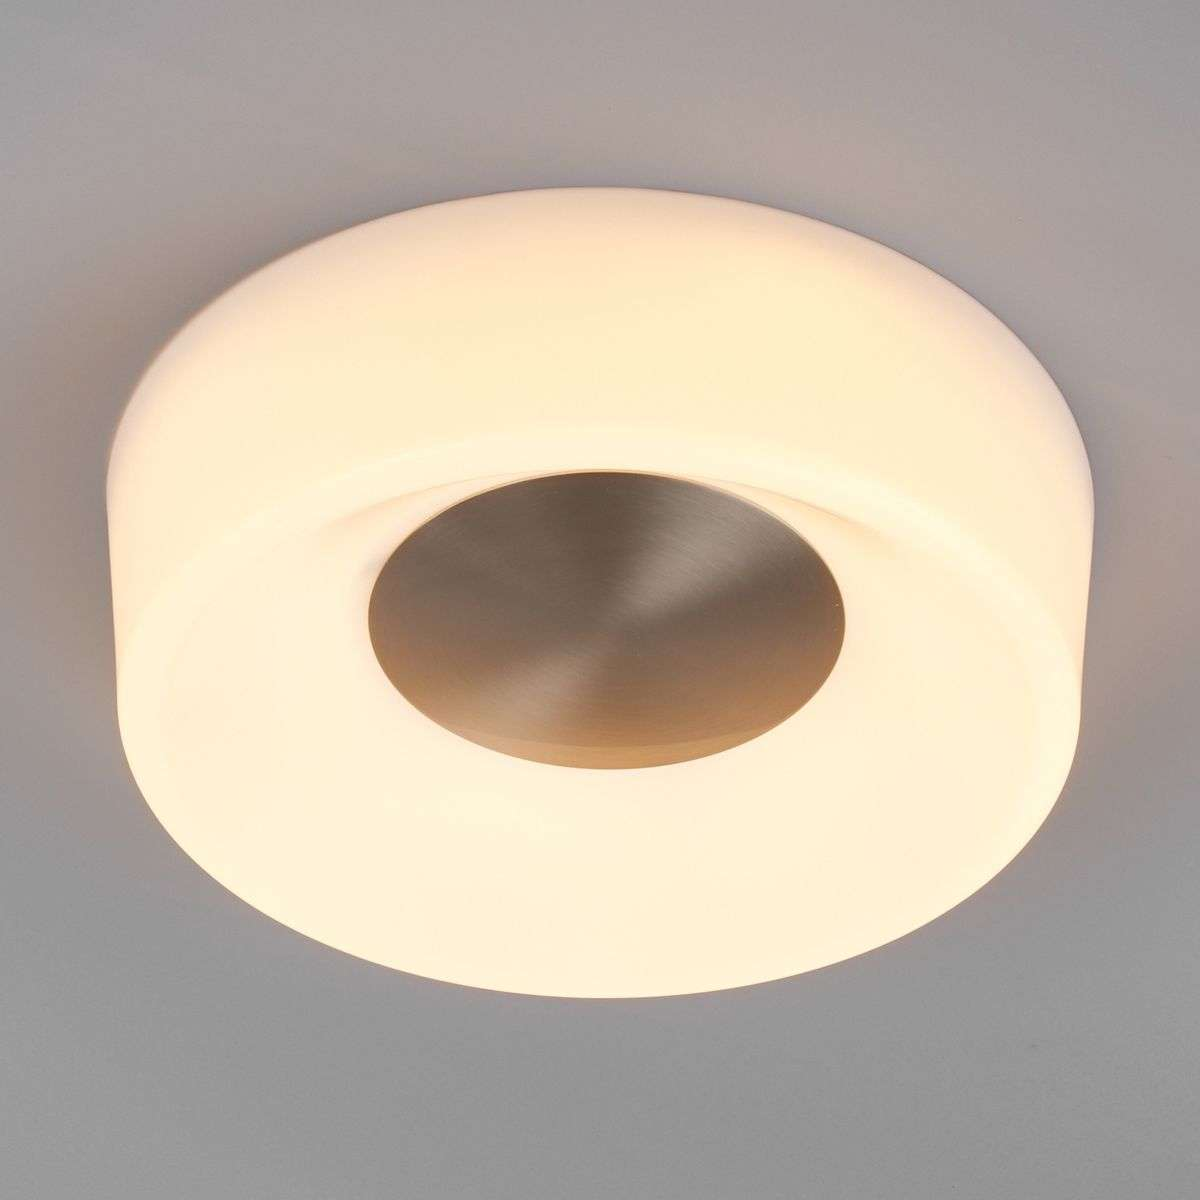 Round LED Ceiling Light Carl-1050093-31